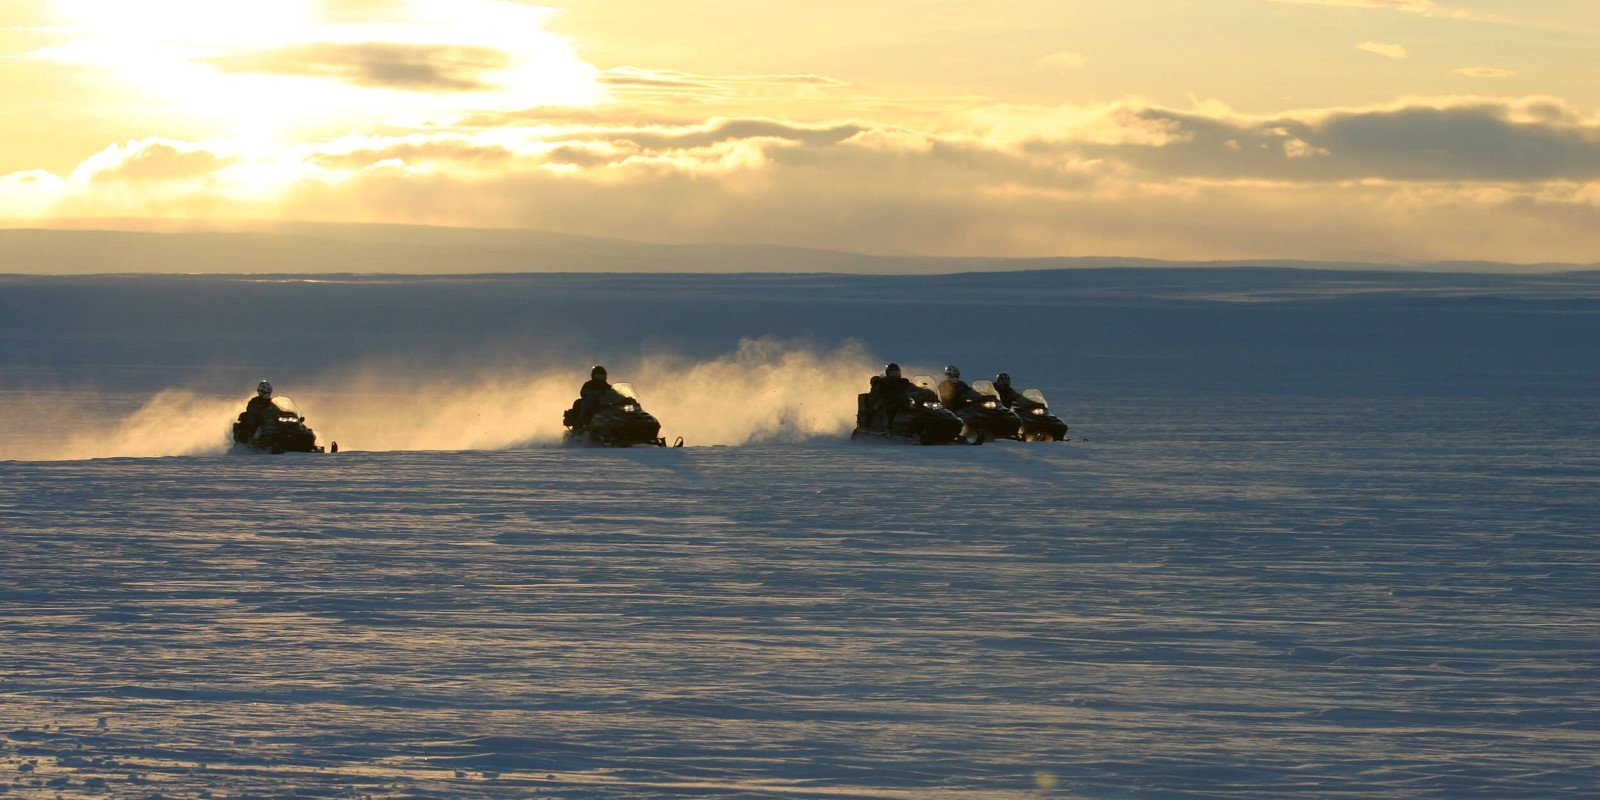 6d snowmobile trip in the arctic_30_snowmobile 2005 002.jpg